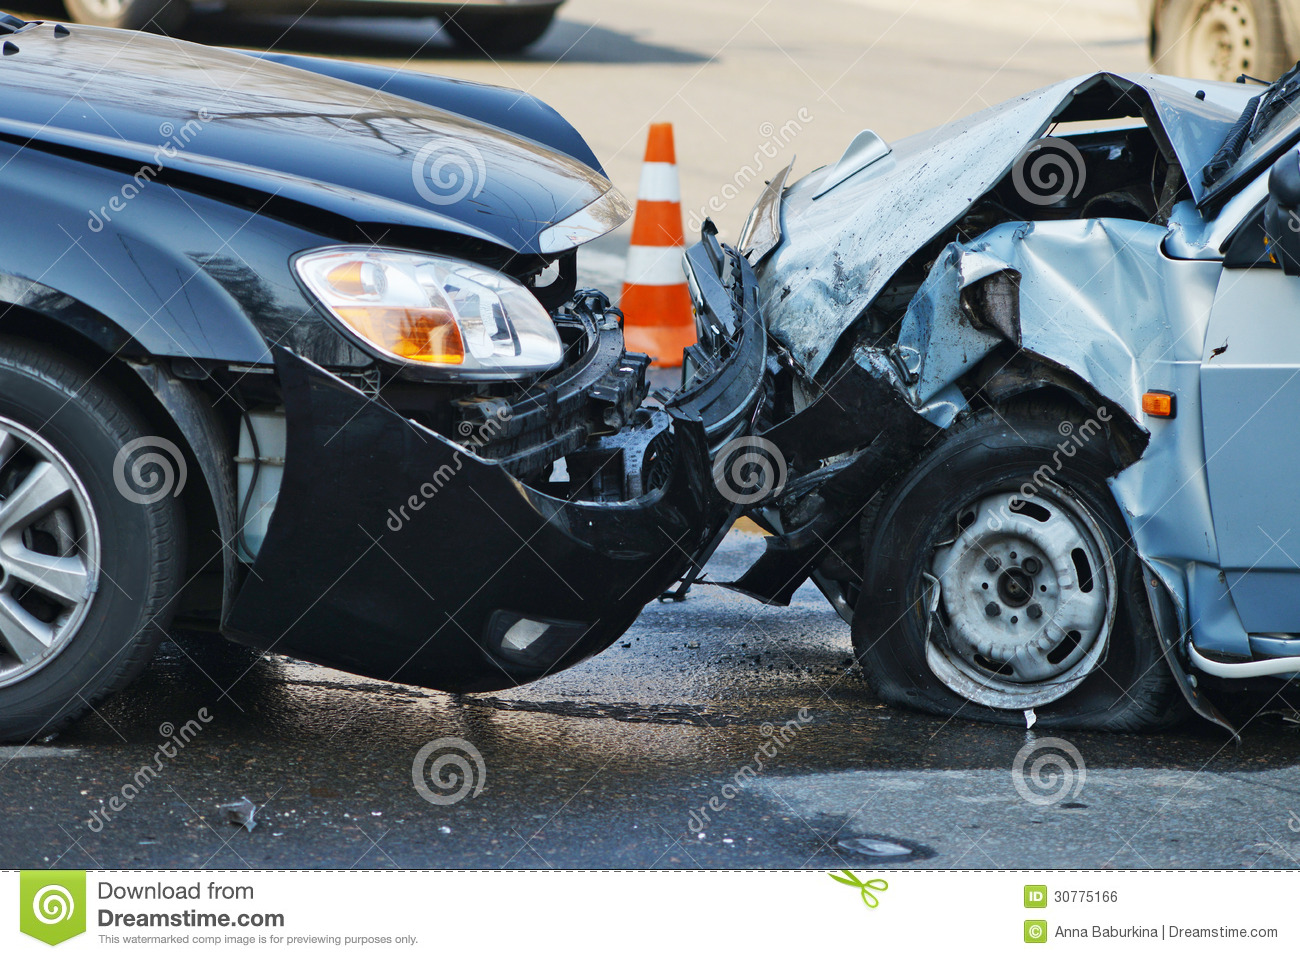 Car accident stock photo. Image of drunk, injury, engine - 30775166